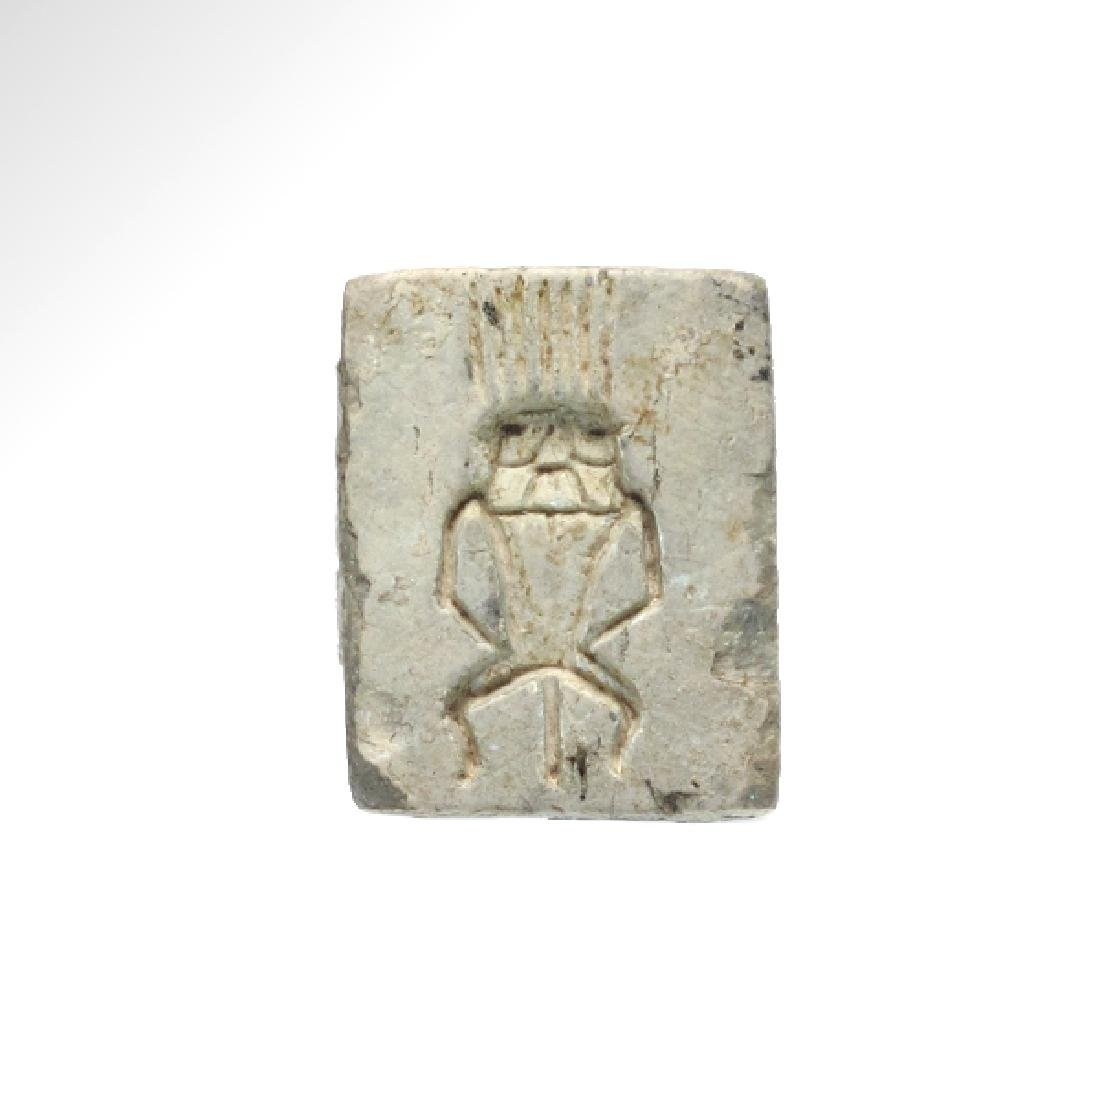 Egyptian Steatite Plaque, Bes and Royal Cartouche of